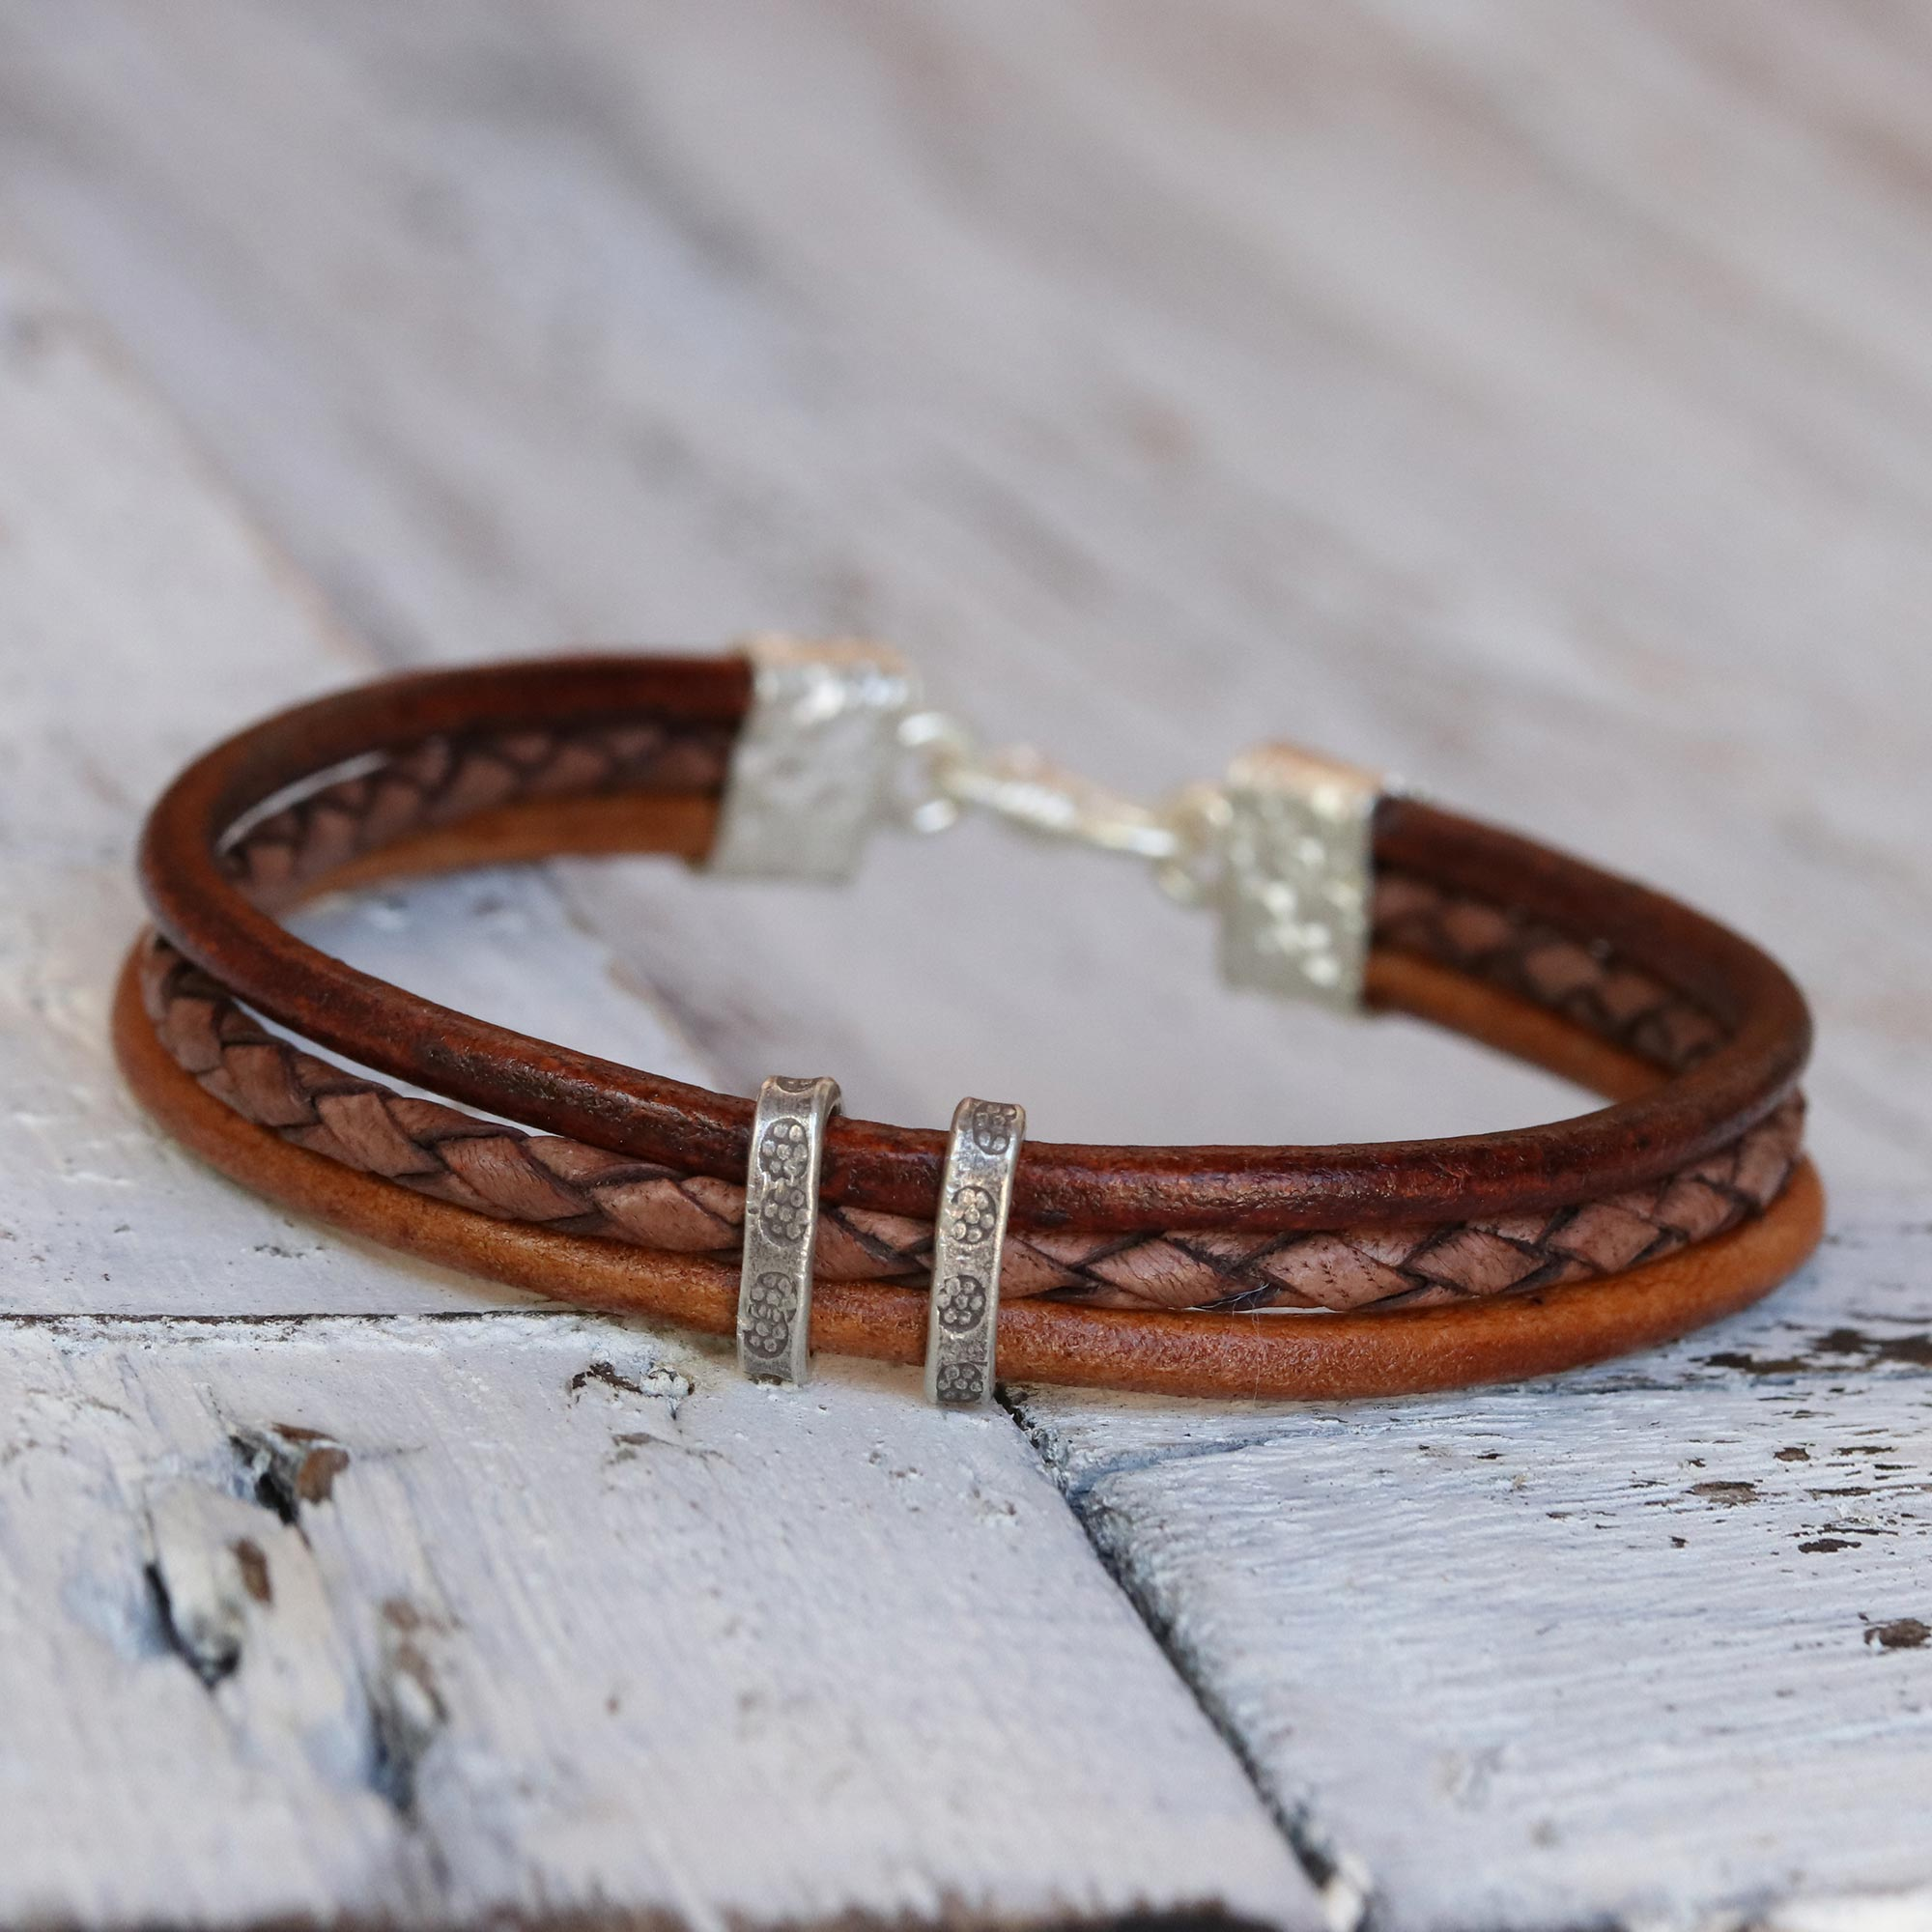 Brown Textural Contrast Brown Leather Braided Bracelet with Hill Tribe Silver Tribal men's bracelets, leather bracelet